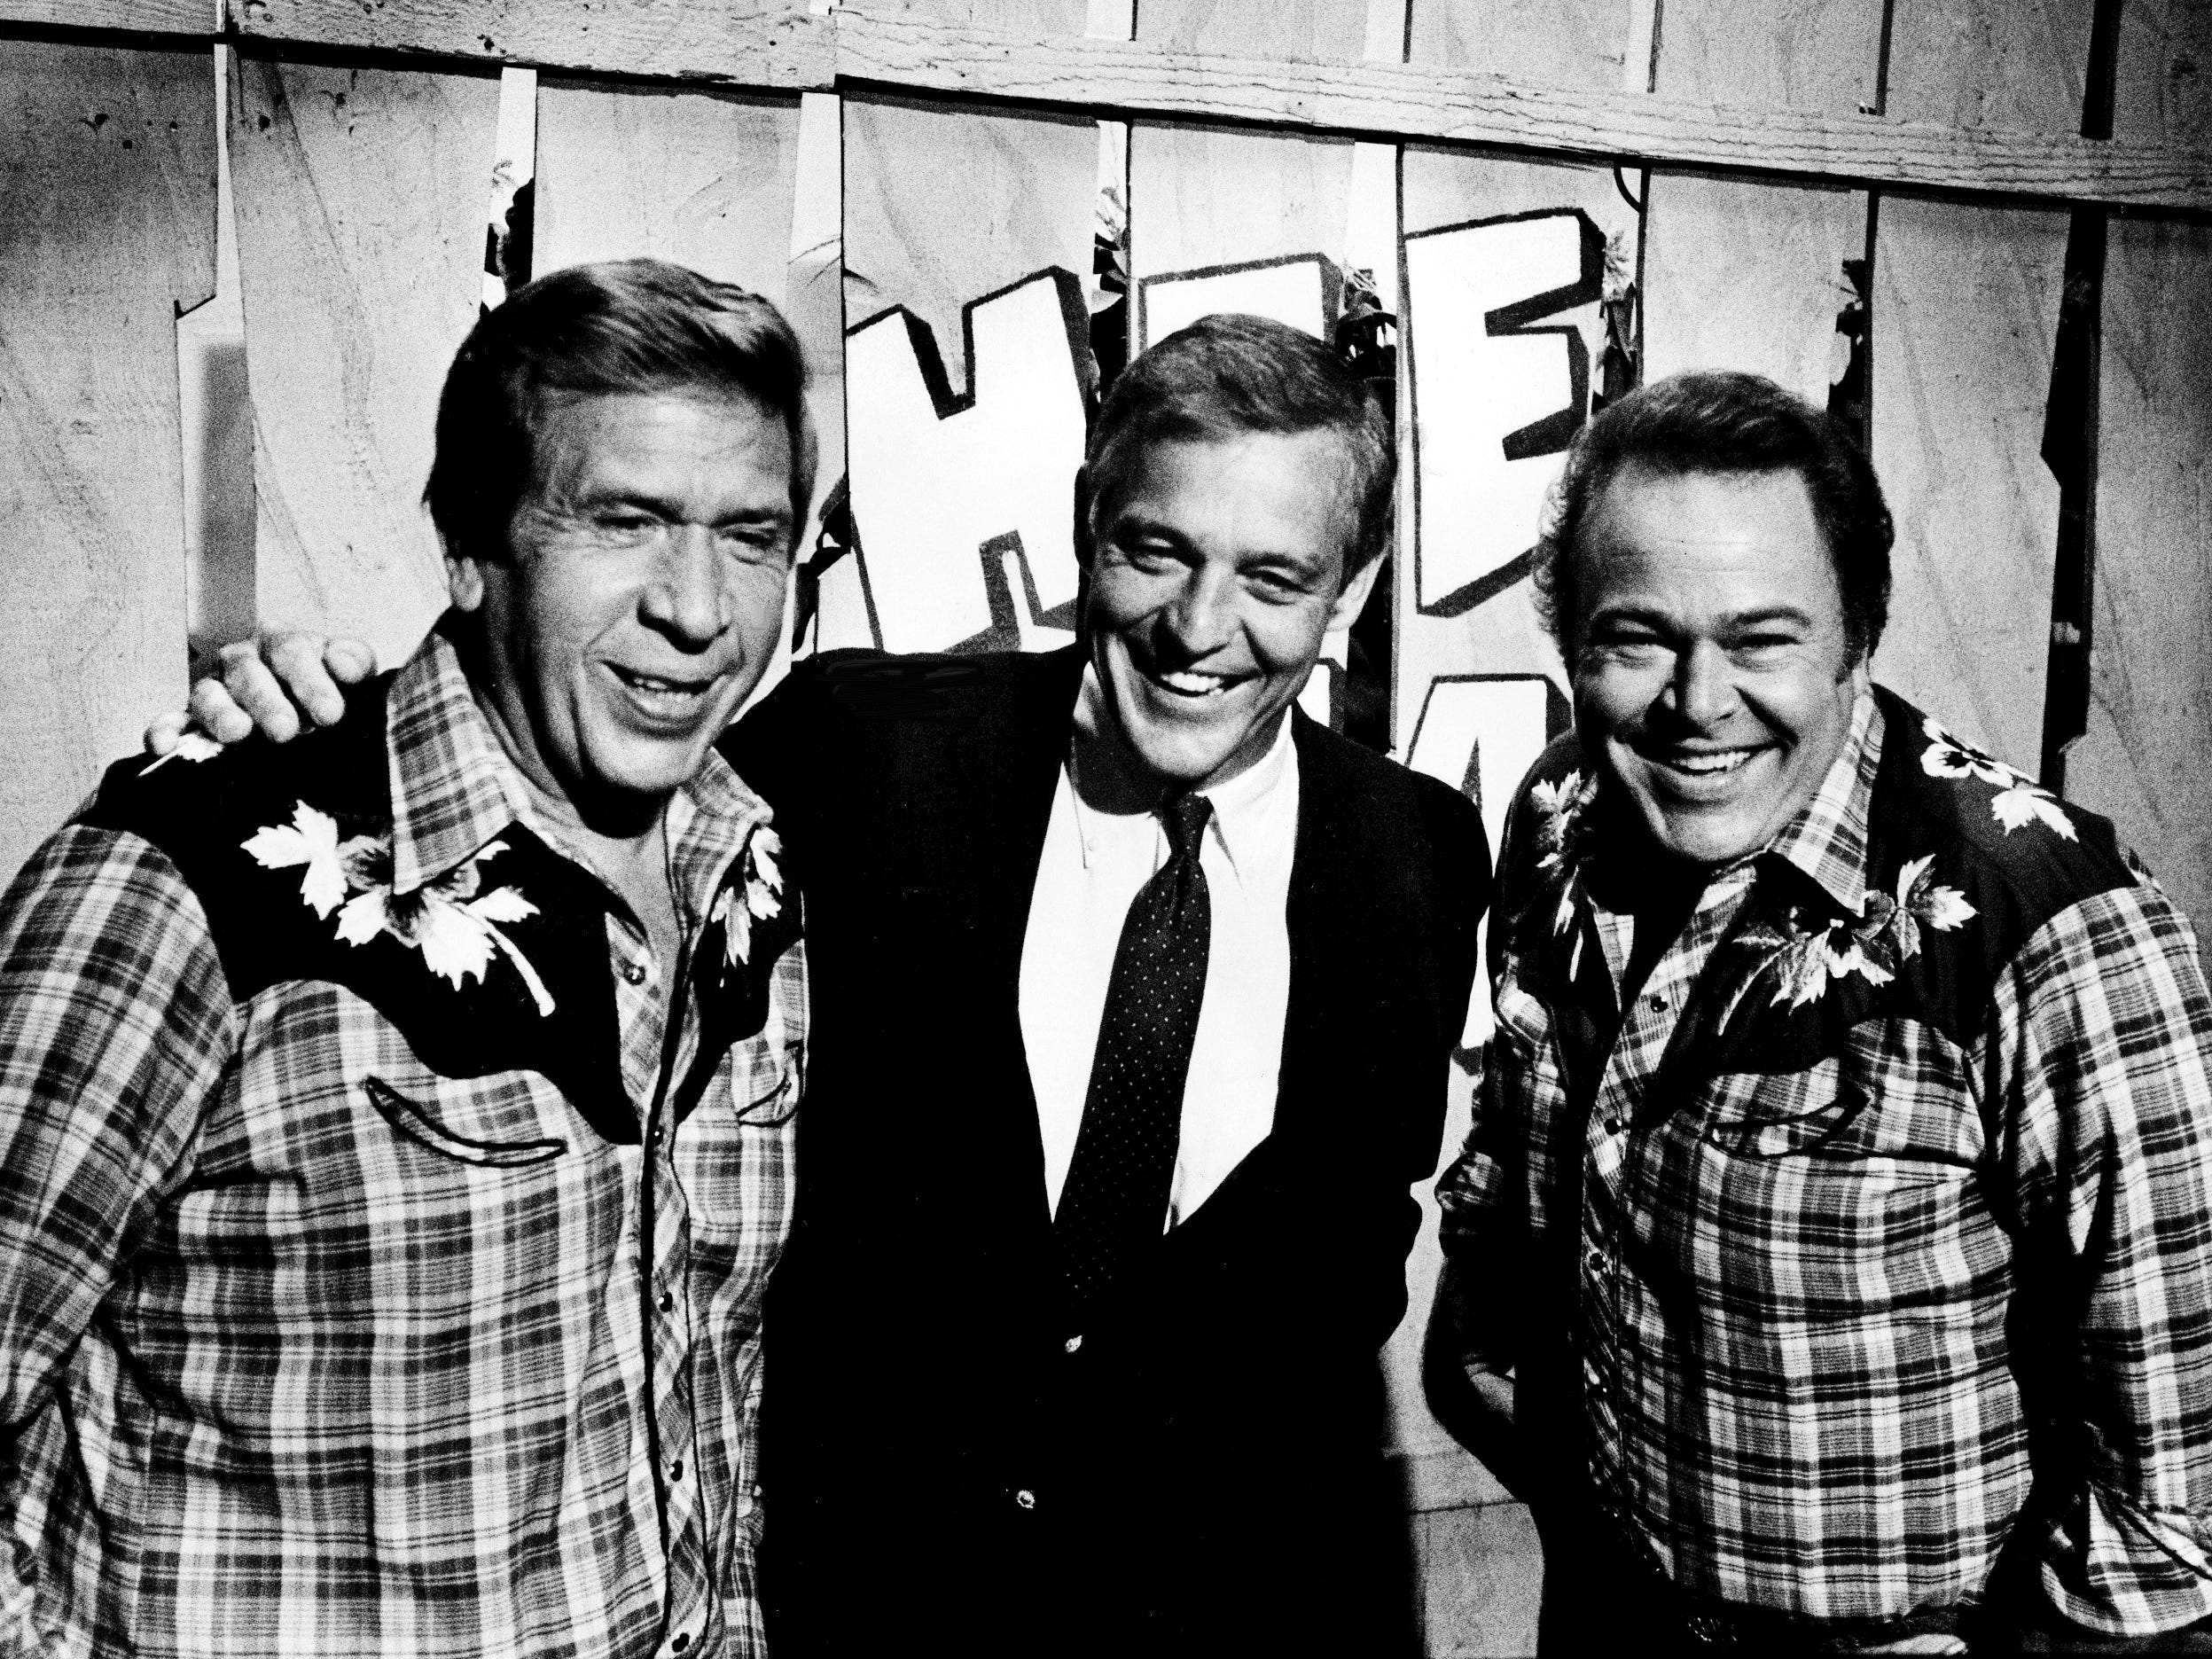 "William Banowsky, center, president of Dallas-based Gaylord Broadcasting Co., jokes with co-hosts Buck Owens, left, and Roy Clark during a visit June 18, 1985, to the Nashville set of ""Hee Haw,"" which is produced by Gaylord Program Services, a subsidiary operation."